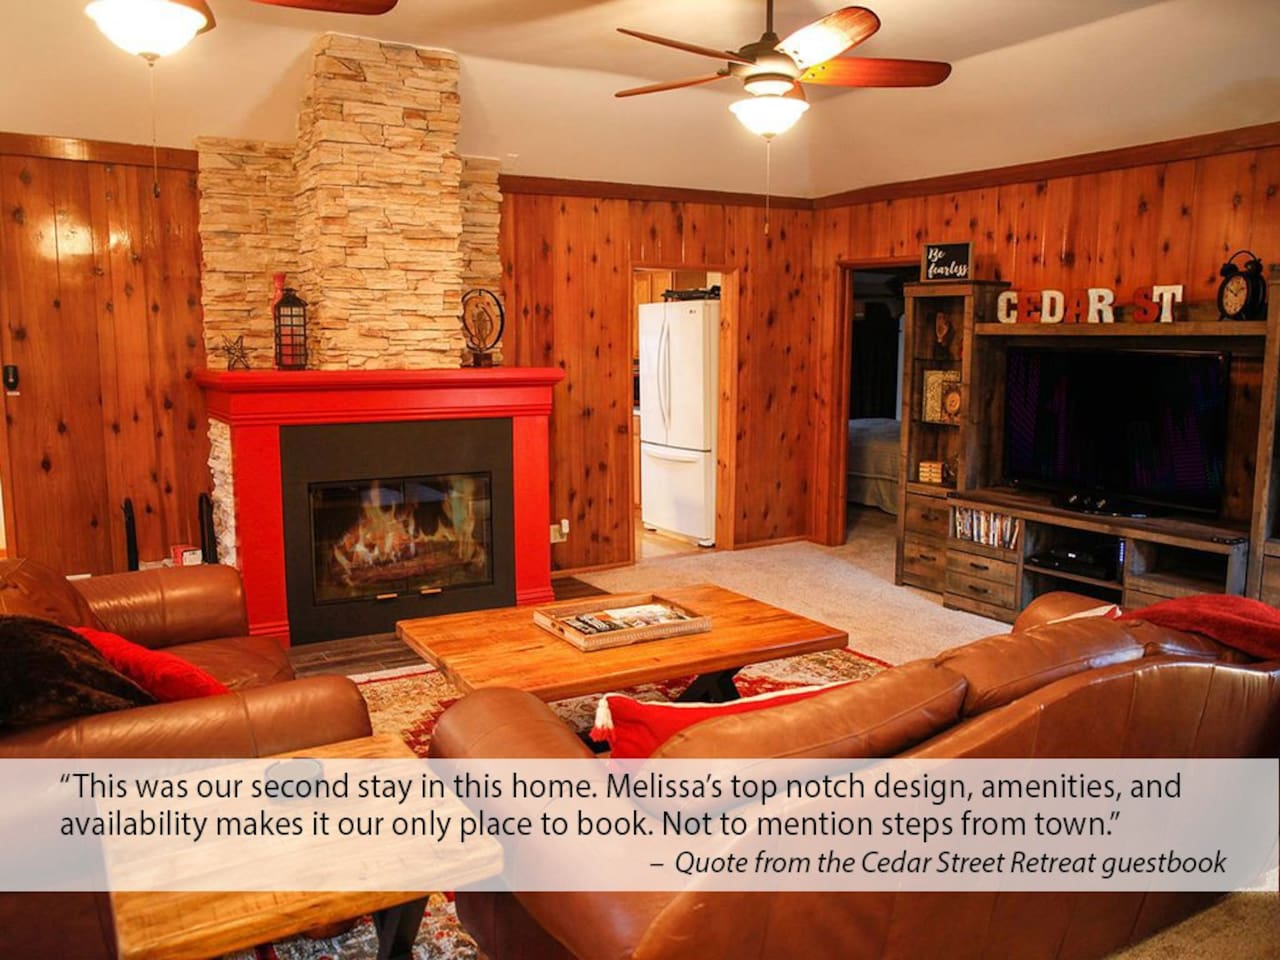 Welcome home! My 5 star homes welcome you. Just read the amazing reviews! The large, comfortable living room is perfect for spending time with family and friends. The wood burning fire place adds to the ambiance.